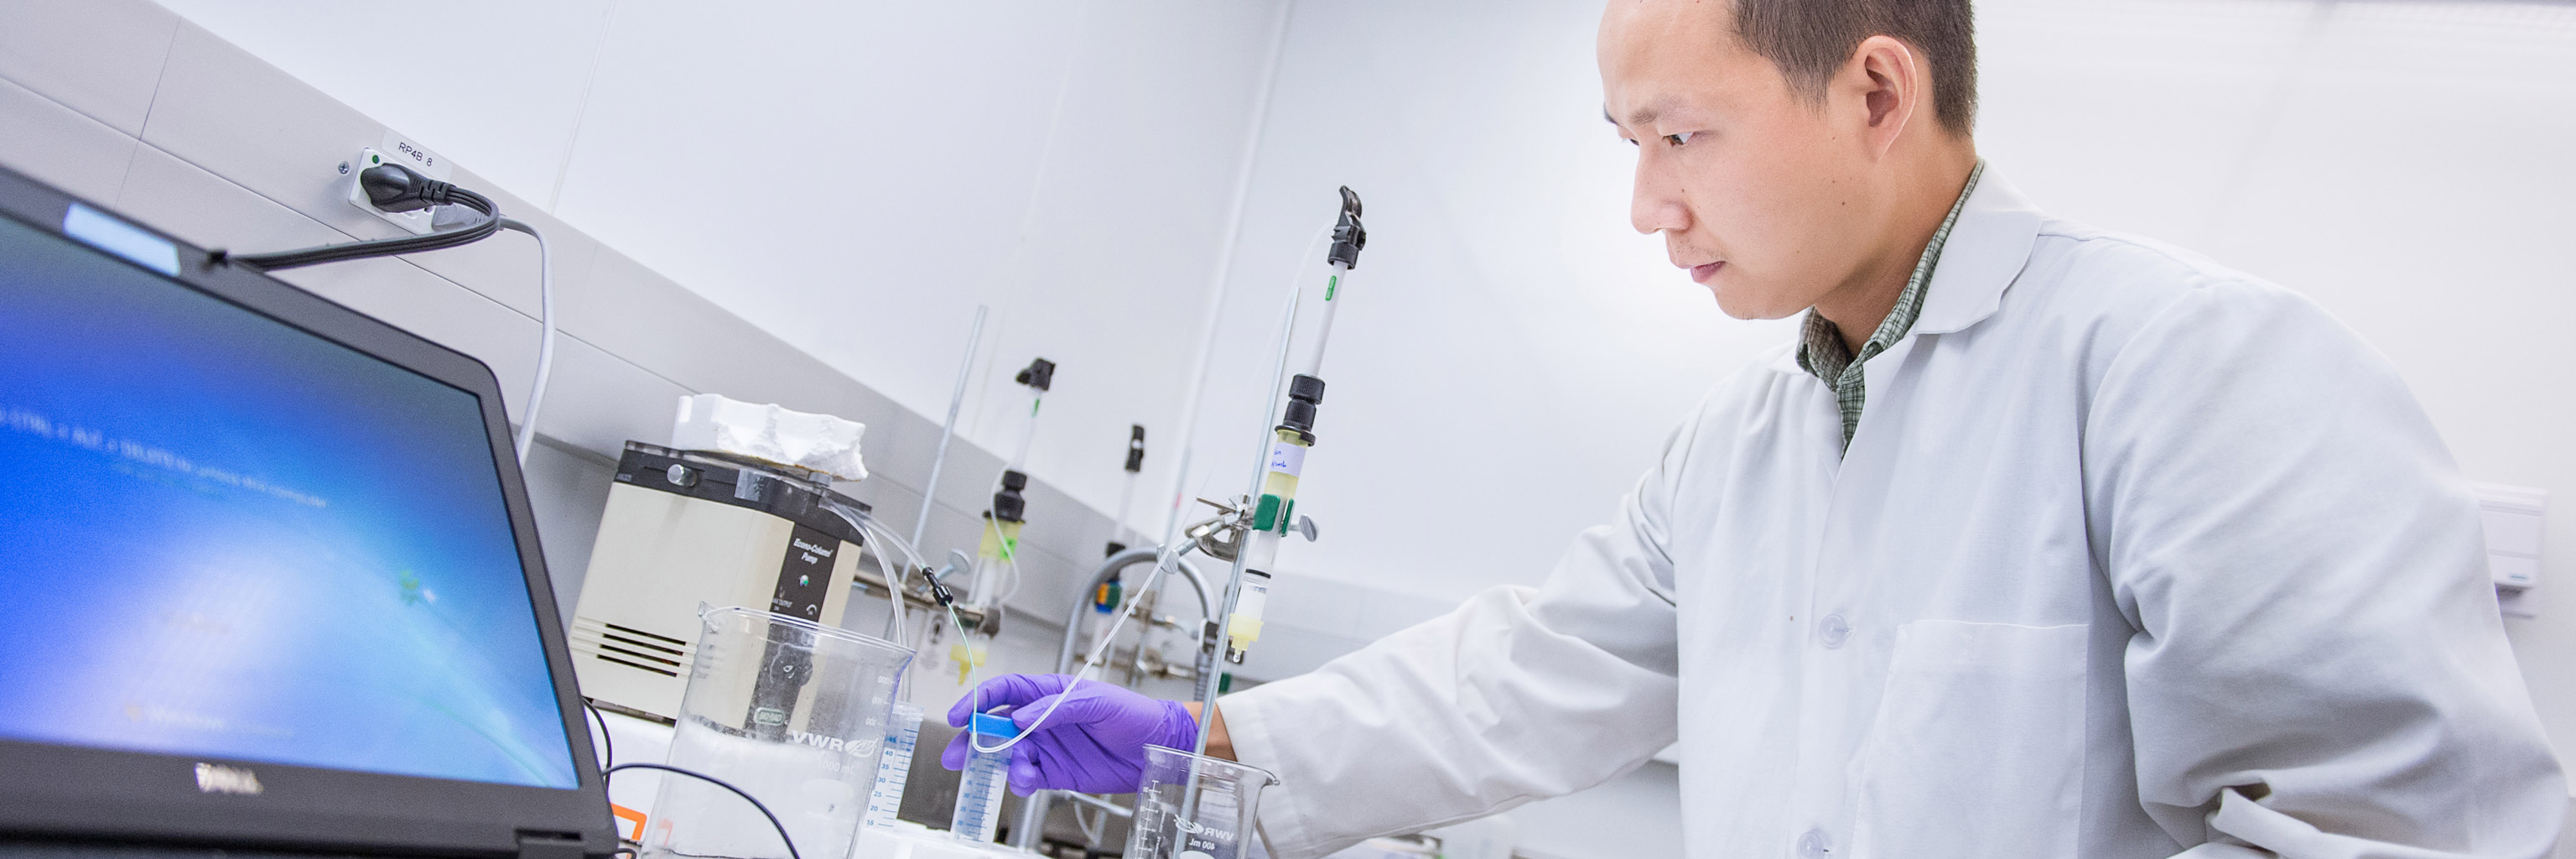 Man working with lab equipment